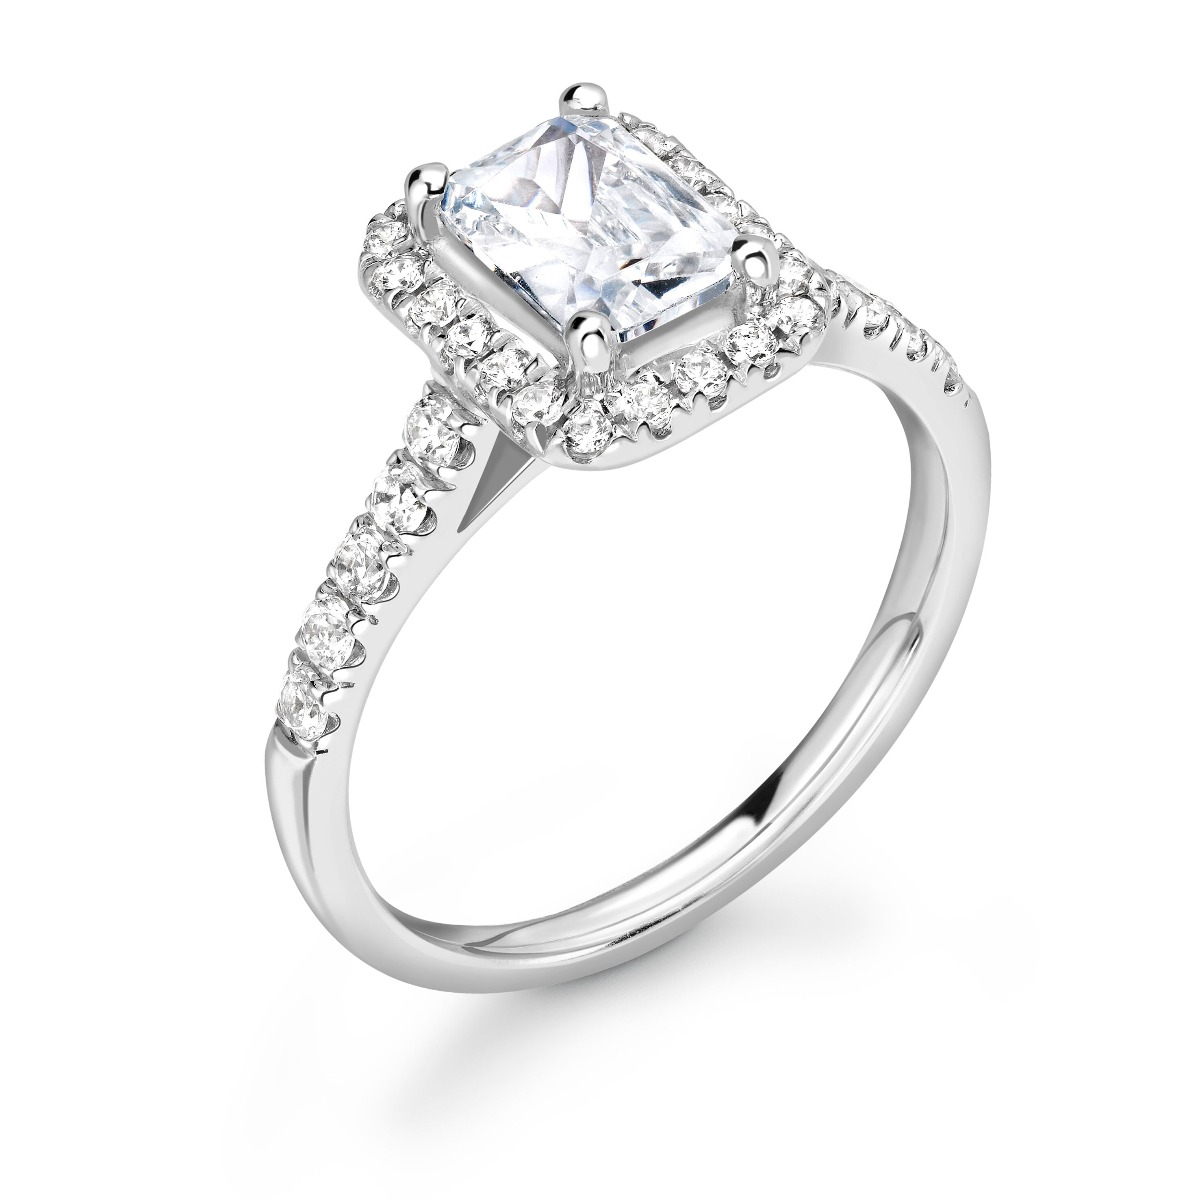 1.01ct Willow Halo   Diamond Emerald Cut Halo Engagement Ring   18K White Gold